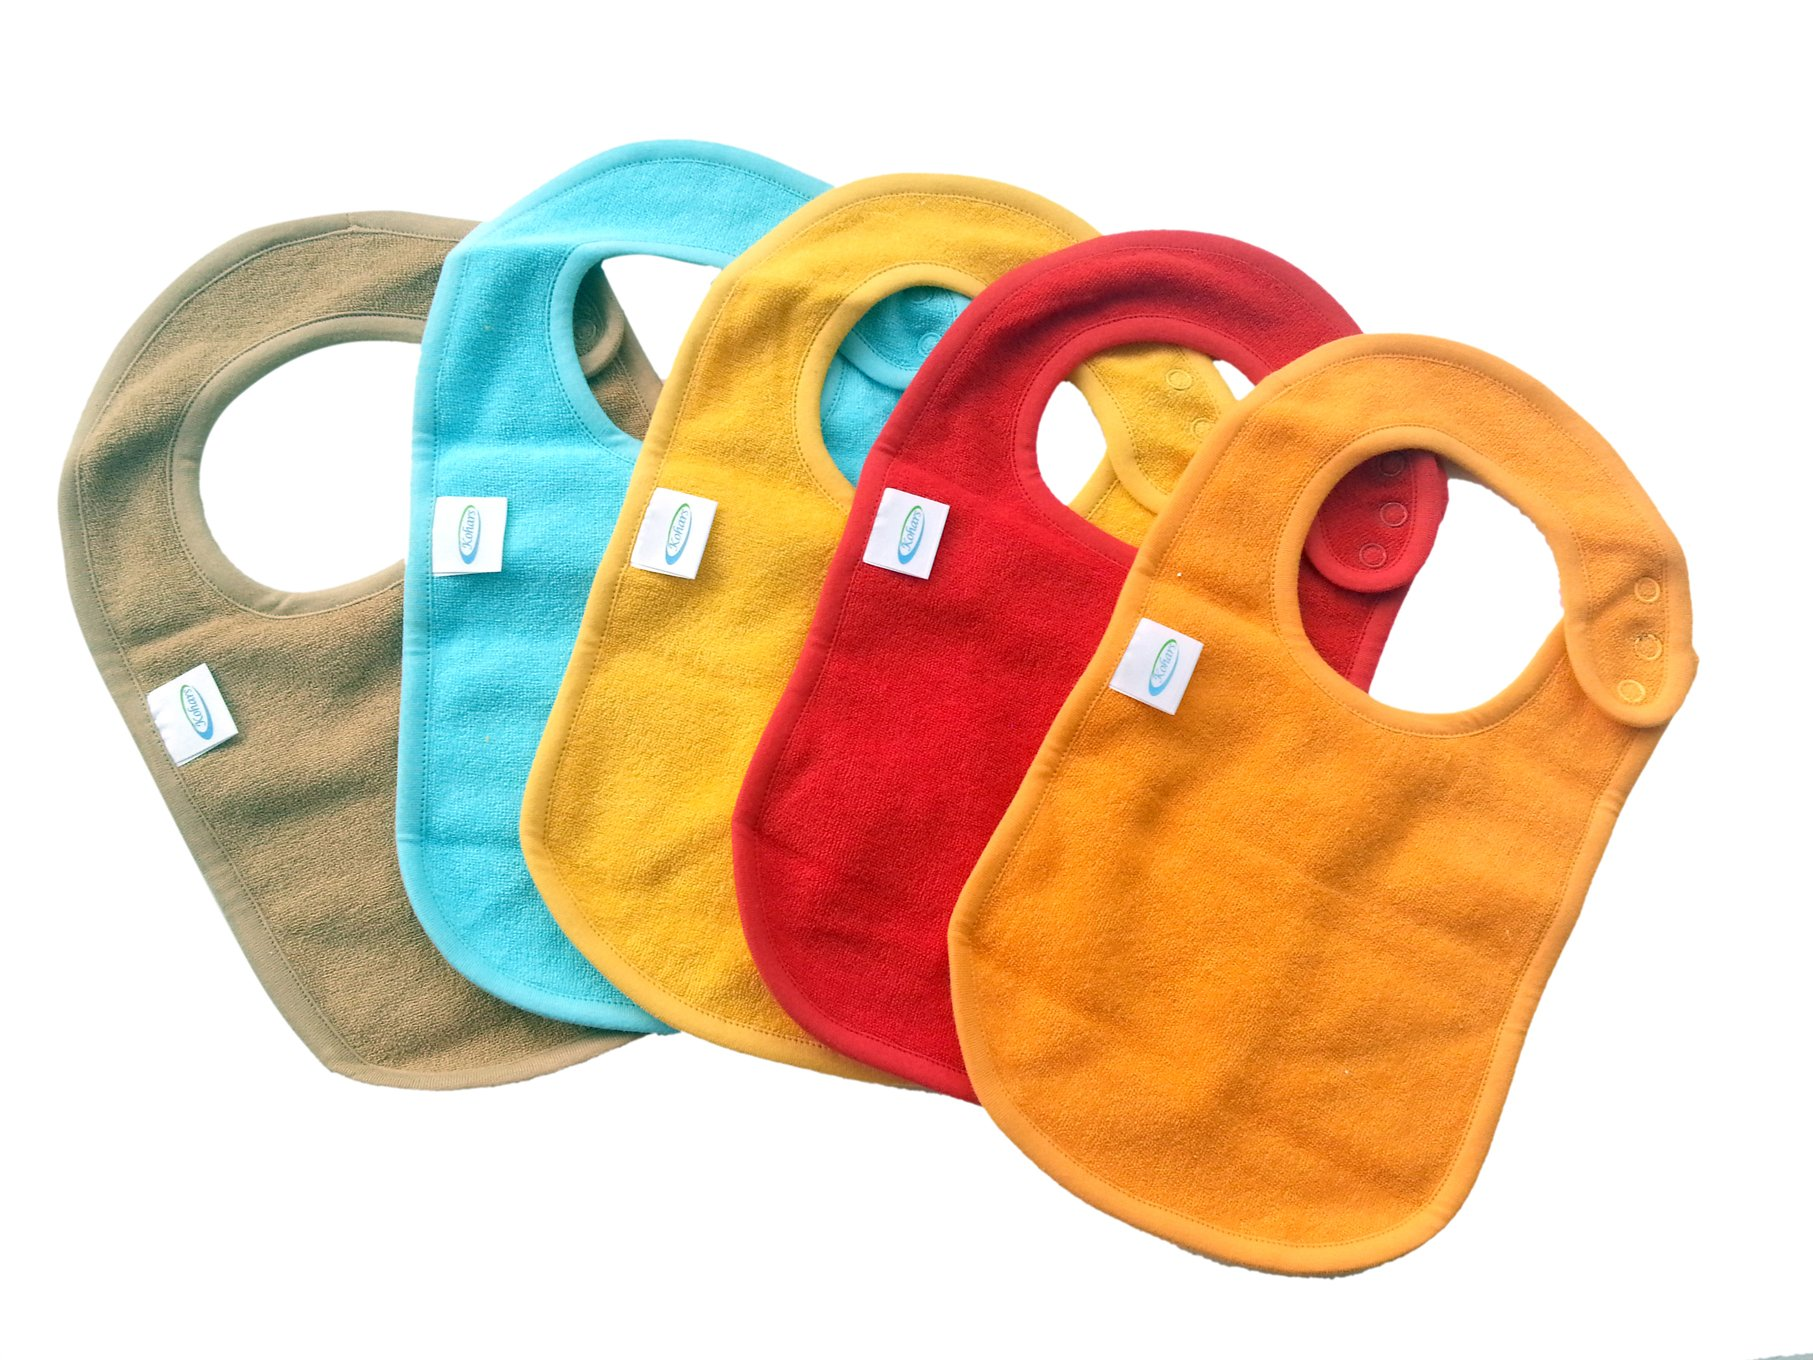 Baby Bibs with Snaps Solid Colors (5 Pack) by Kohars. 100% Cotton Absorbent Reversible Unisex Teething Dribble Bibs. Perfect for Newborn Infant Toddlers & Baby Shower and Gift Basket